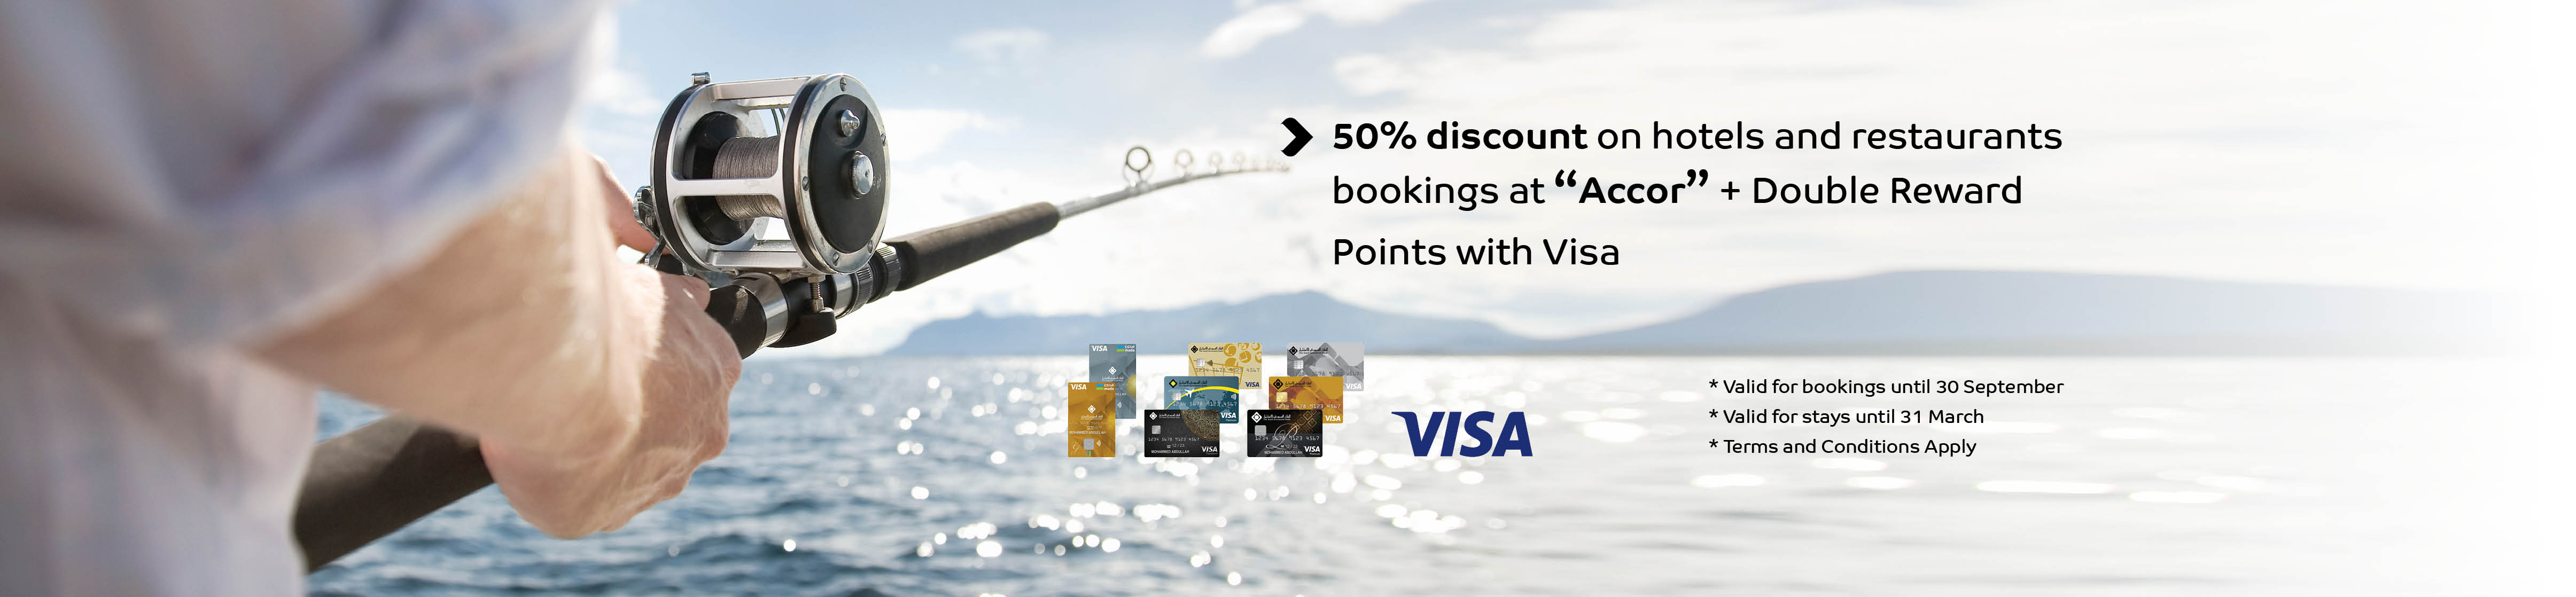 ACCOR AND VISA OFFER